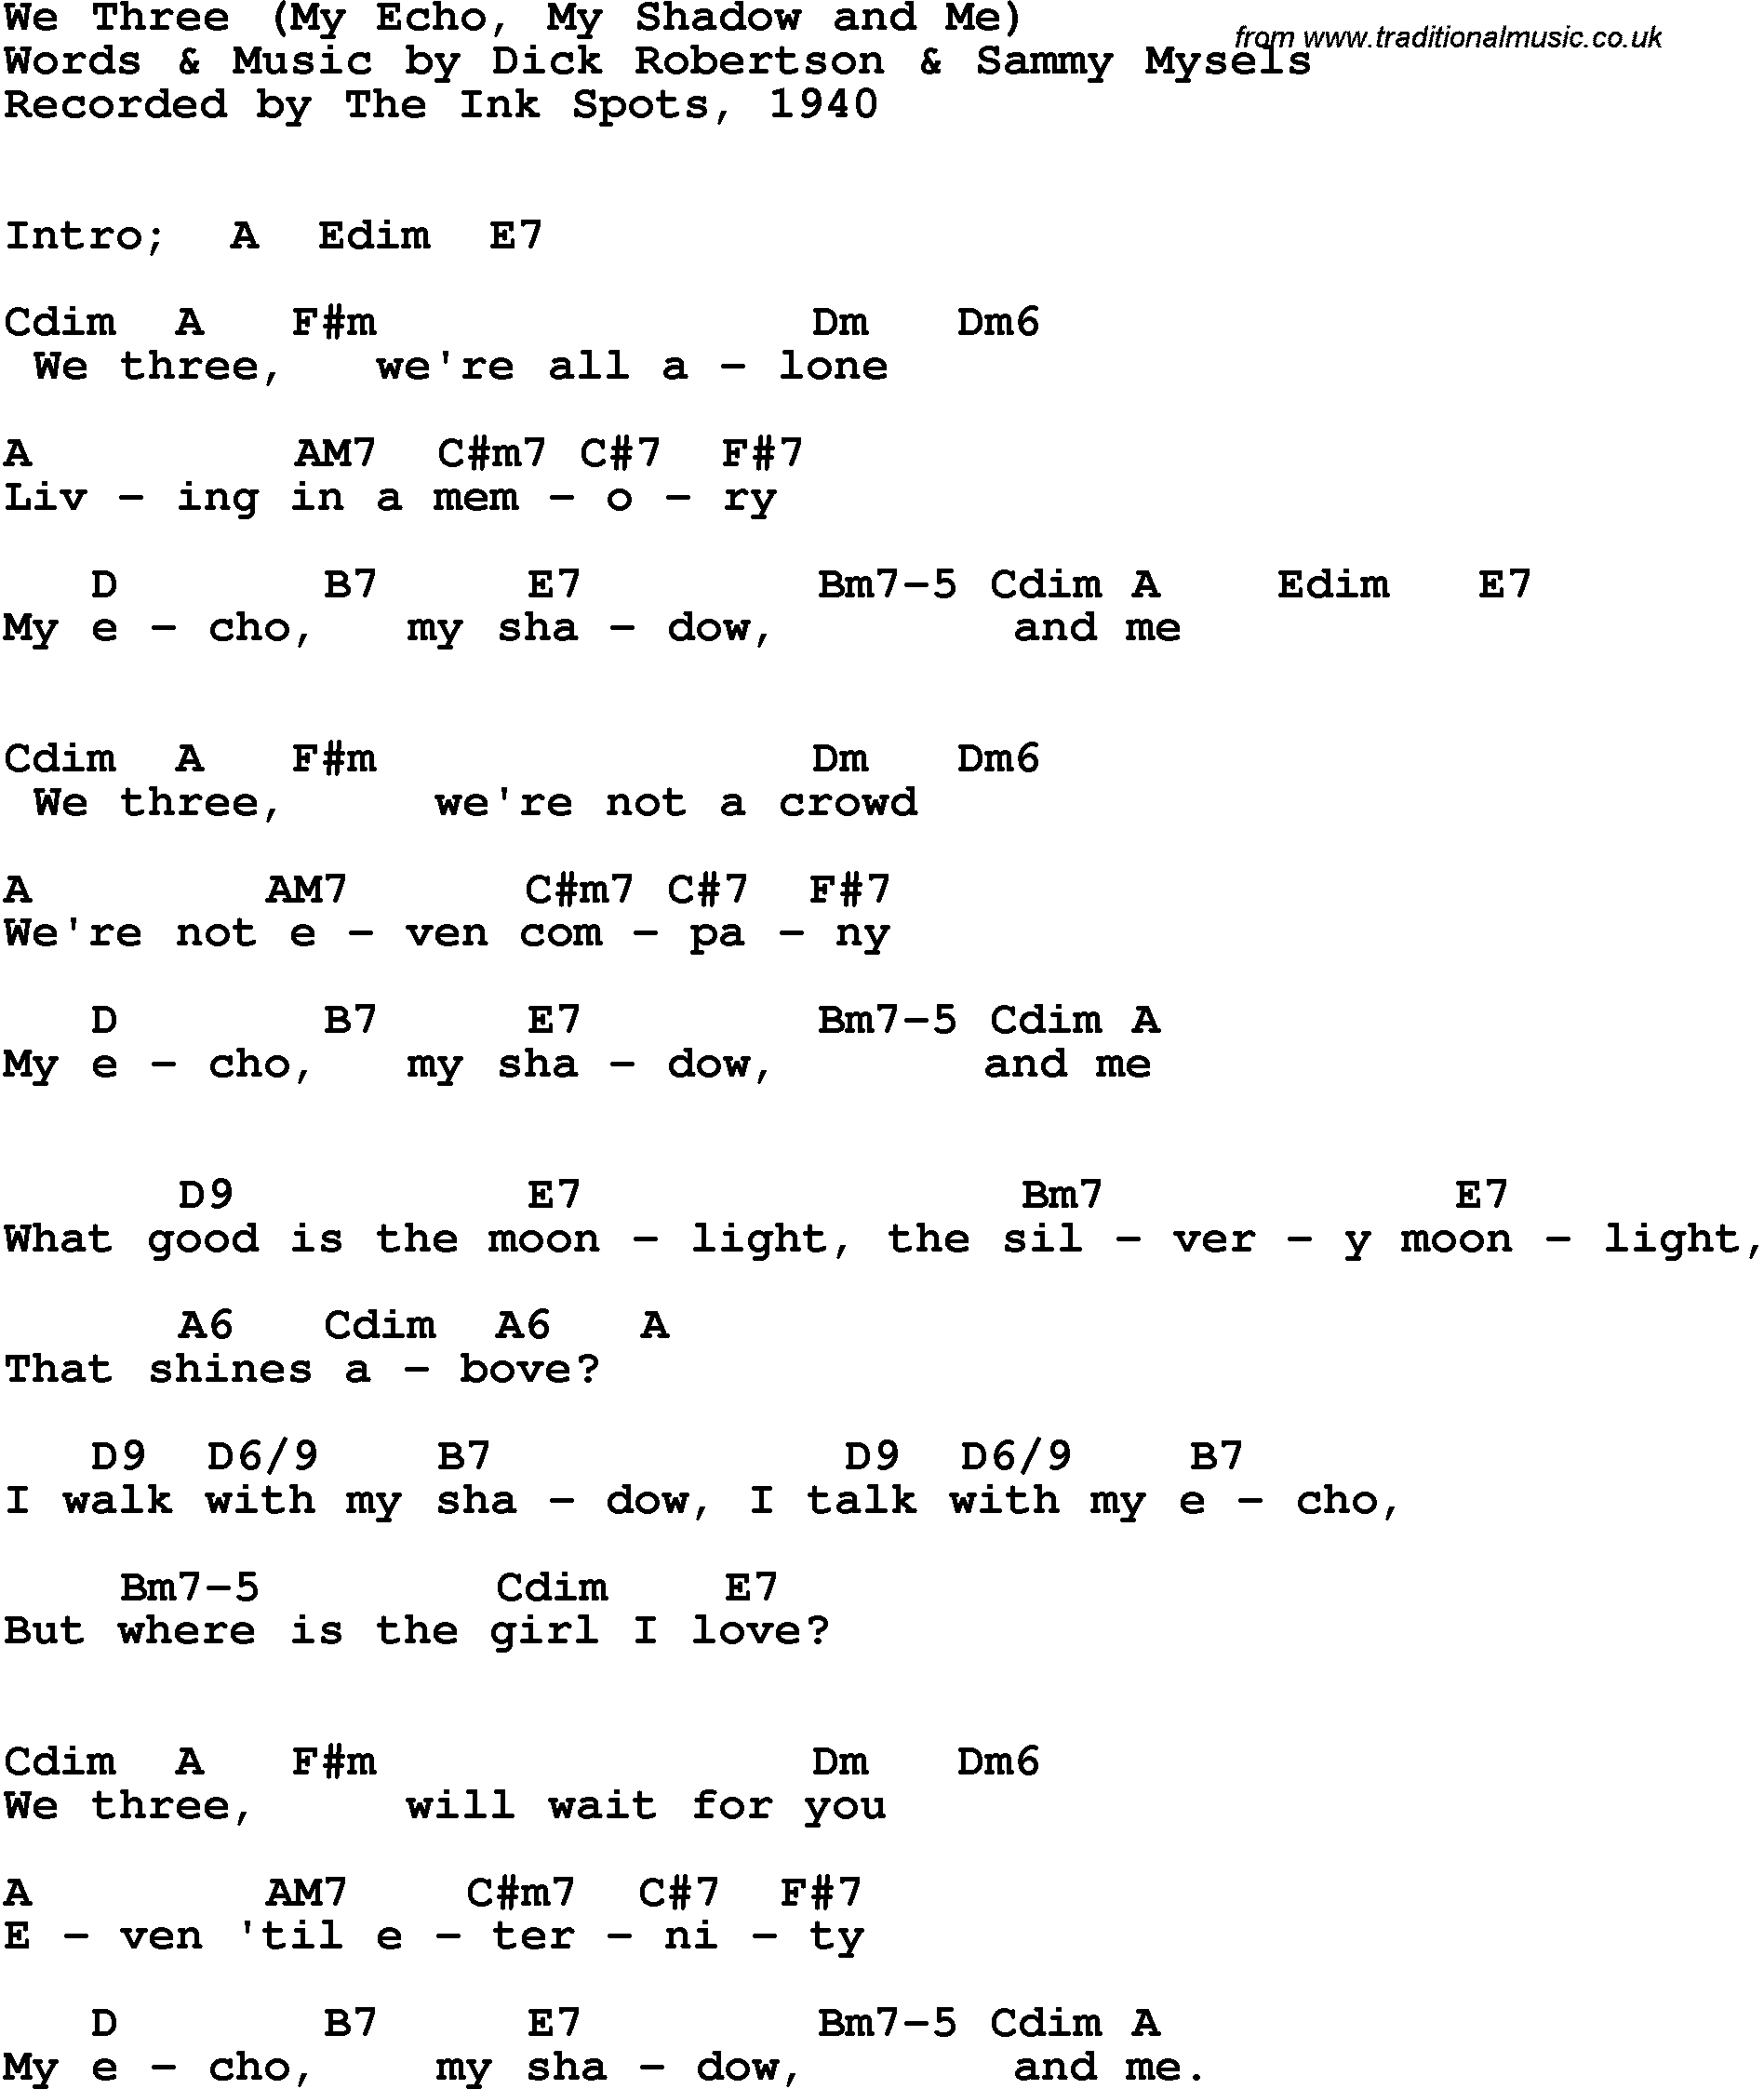 Song Lyrics With Guitar Chords For We Three My Echo My Shadow And